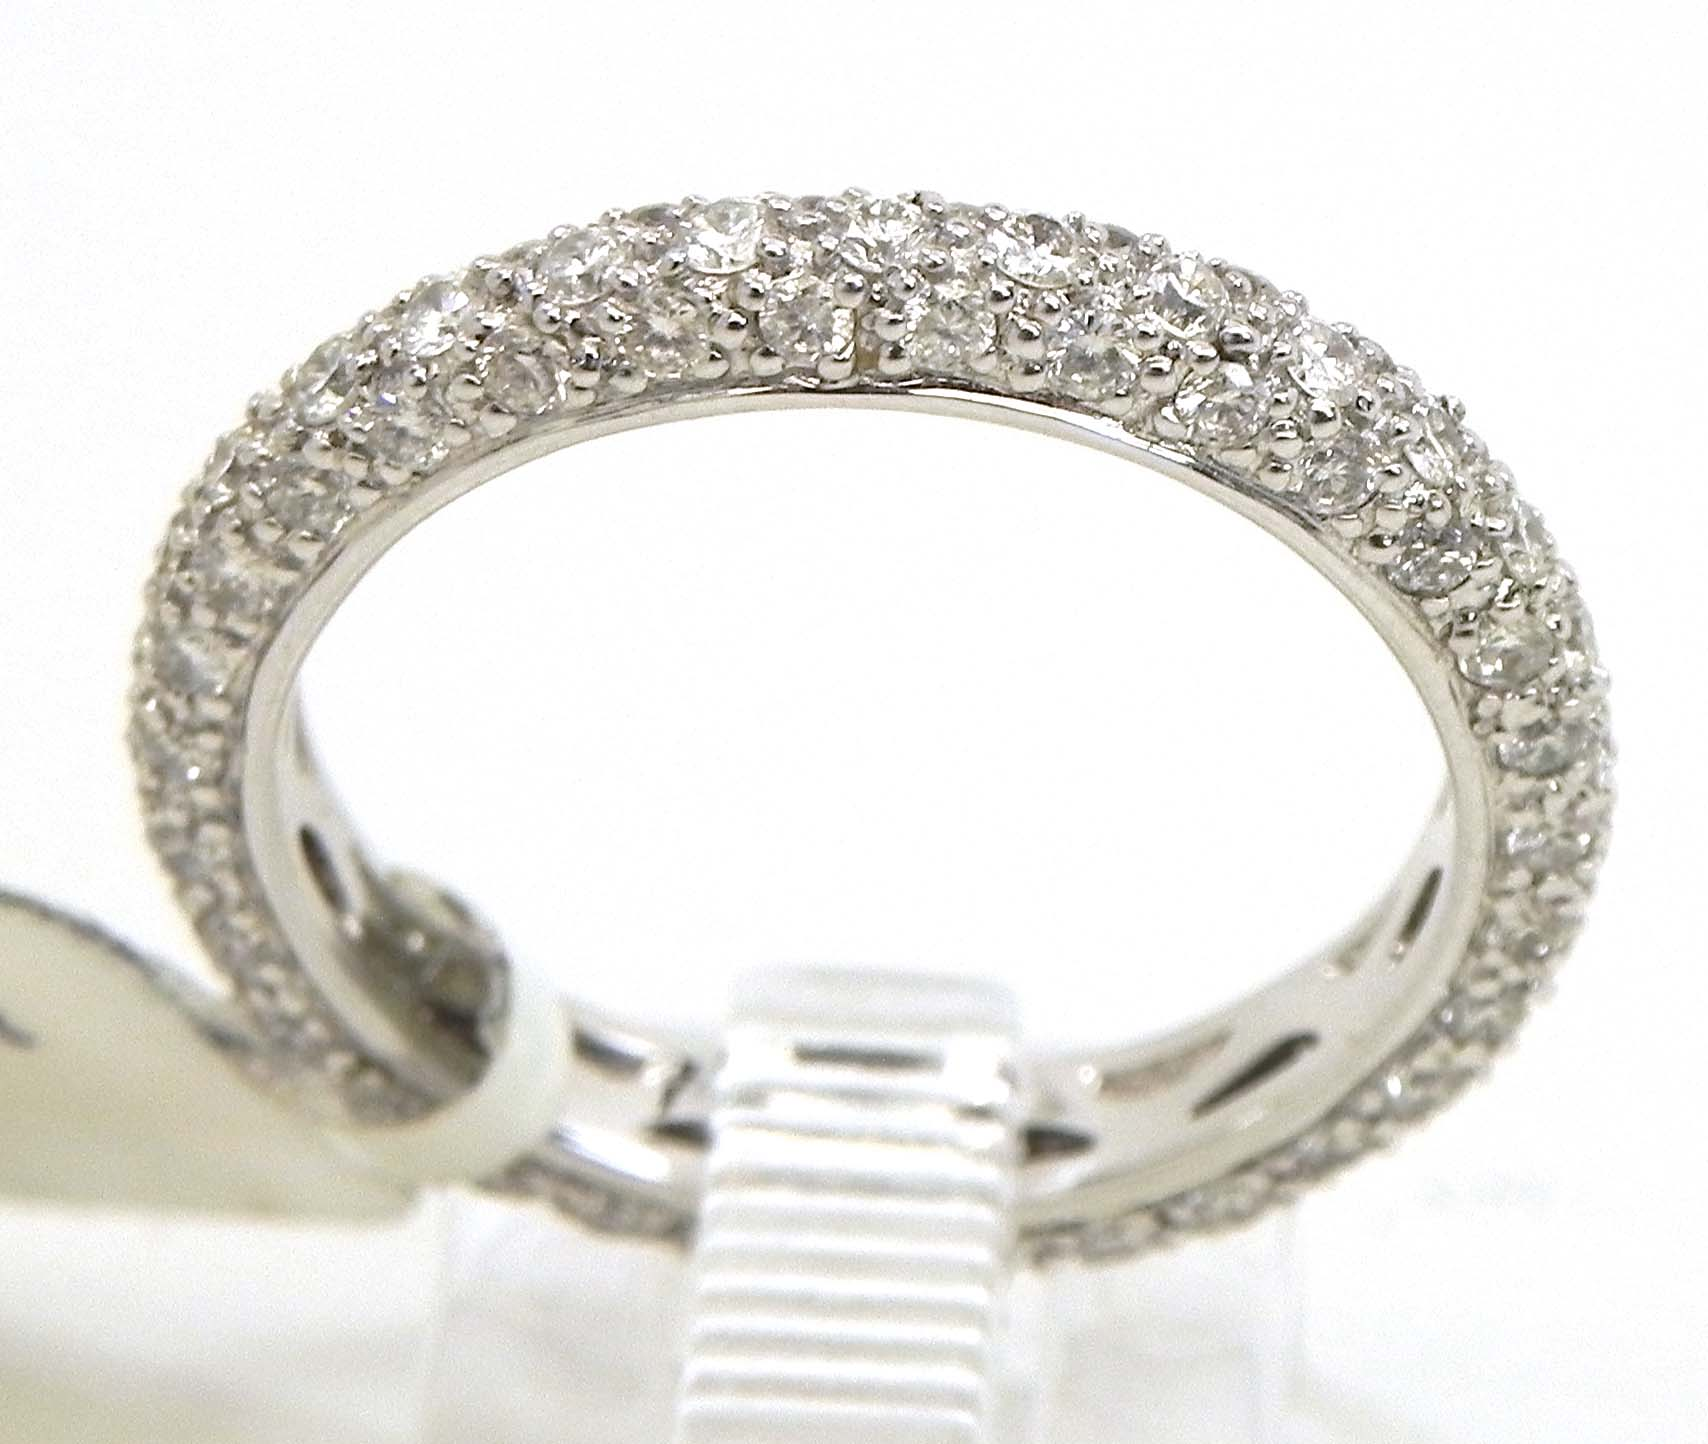 ladies 18k white gold 3 row diamonds eternity wedding band eternity wedding bands Diamonds Eternity Wedding Band 00 Previous Next